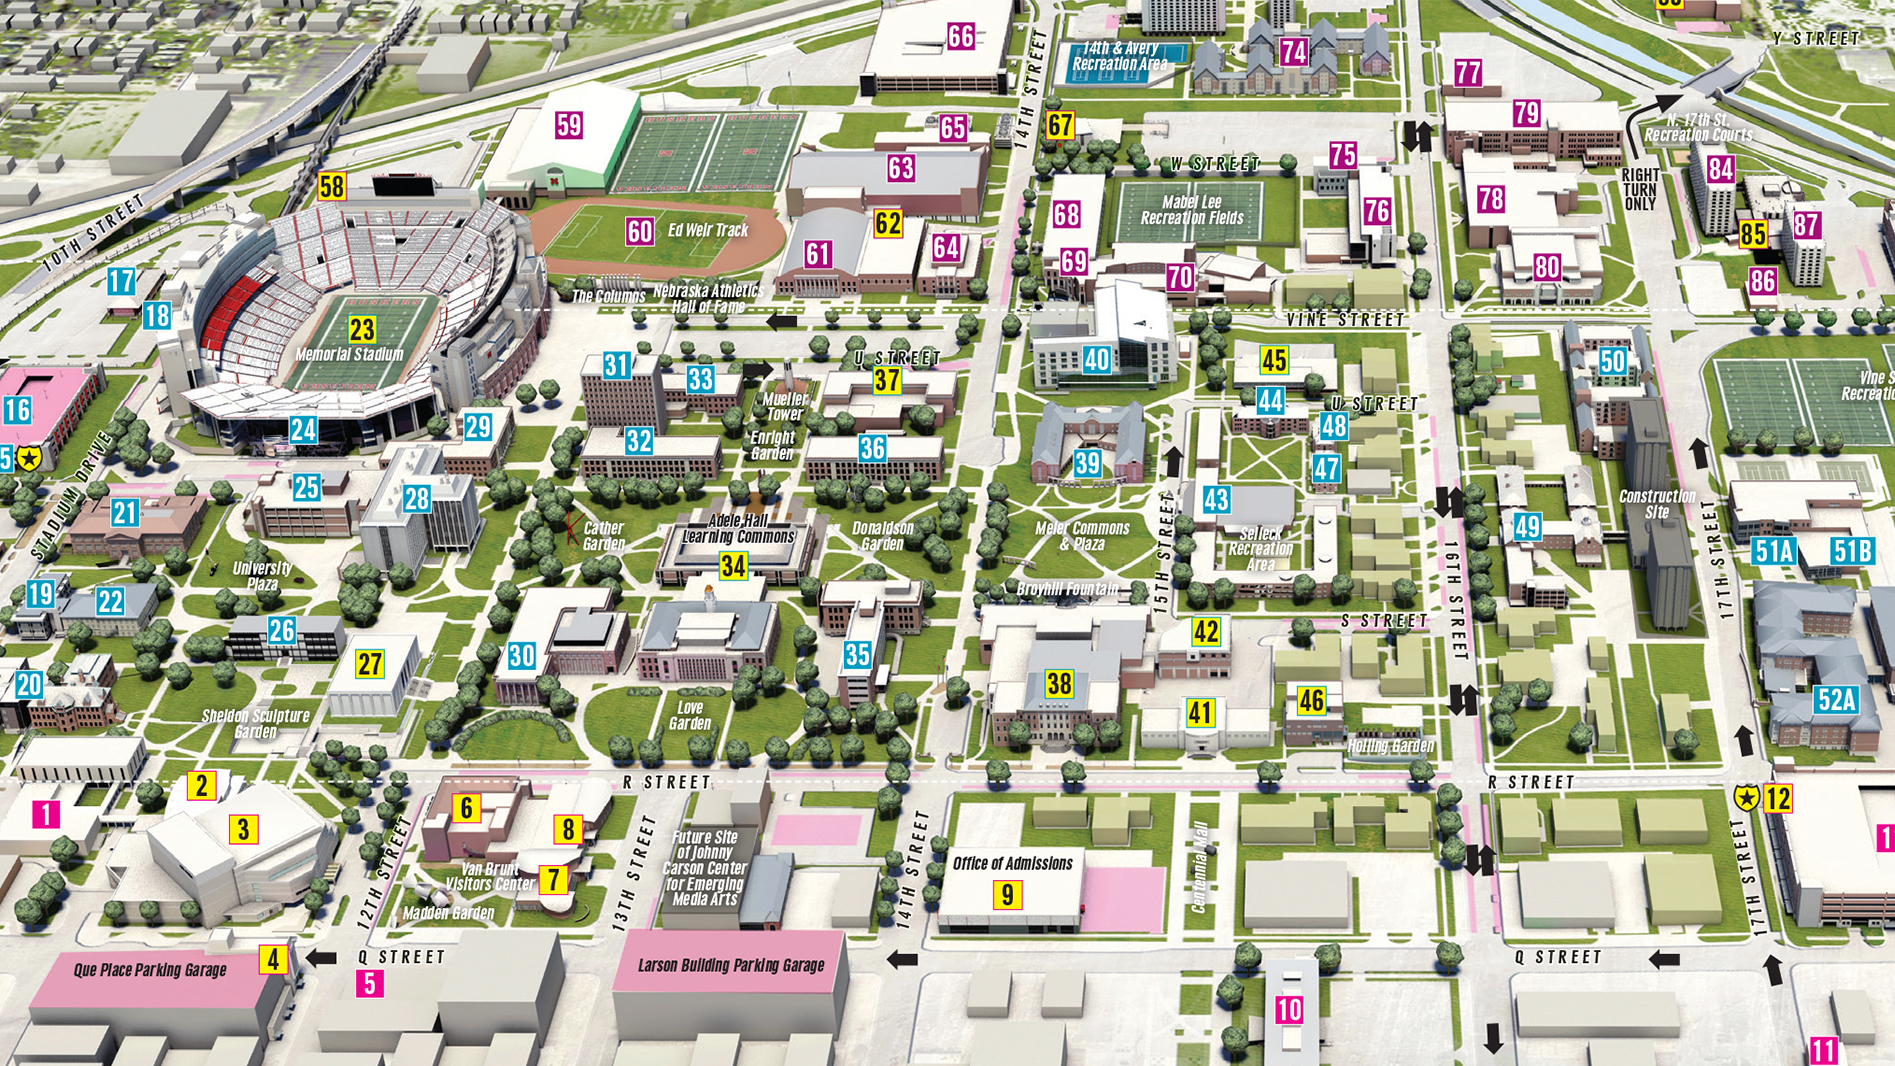 university of nebraska lincoln map New Copies Of Campus Maps Available Nebraska Today University university of nebraska lincoln map